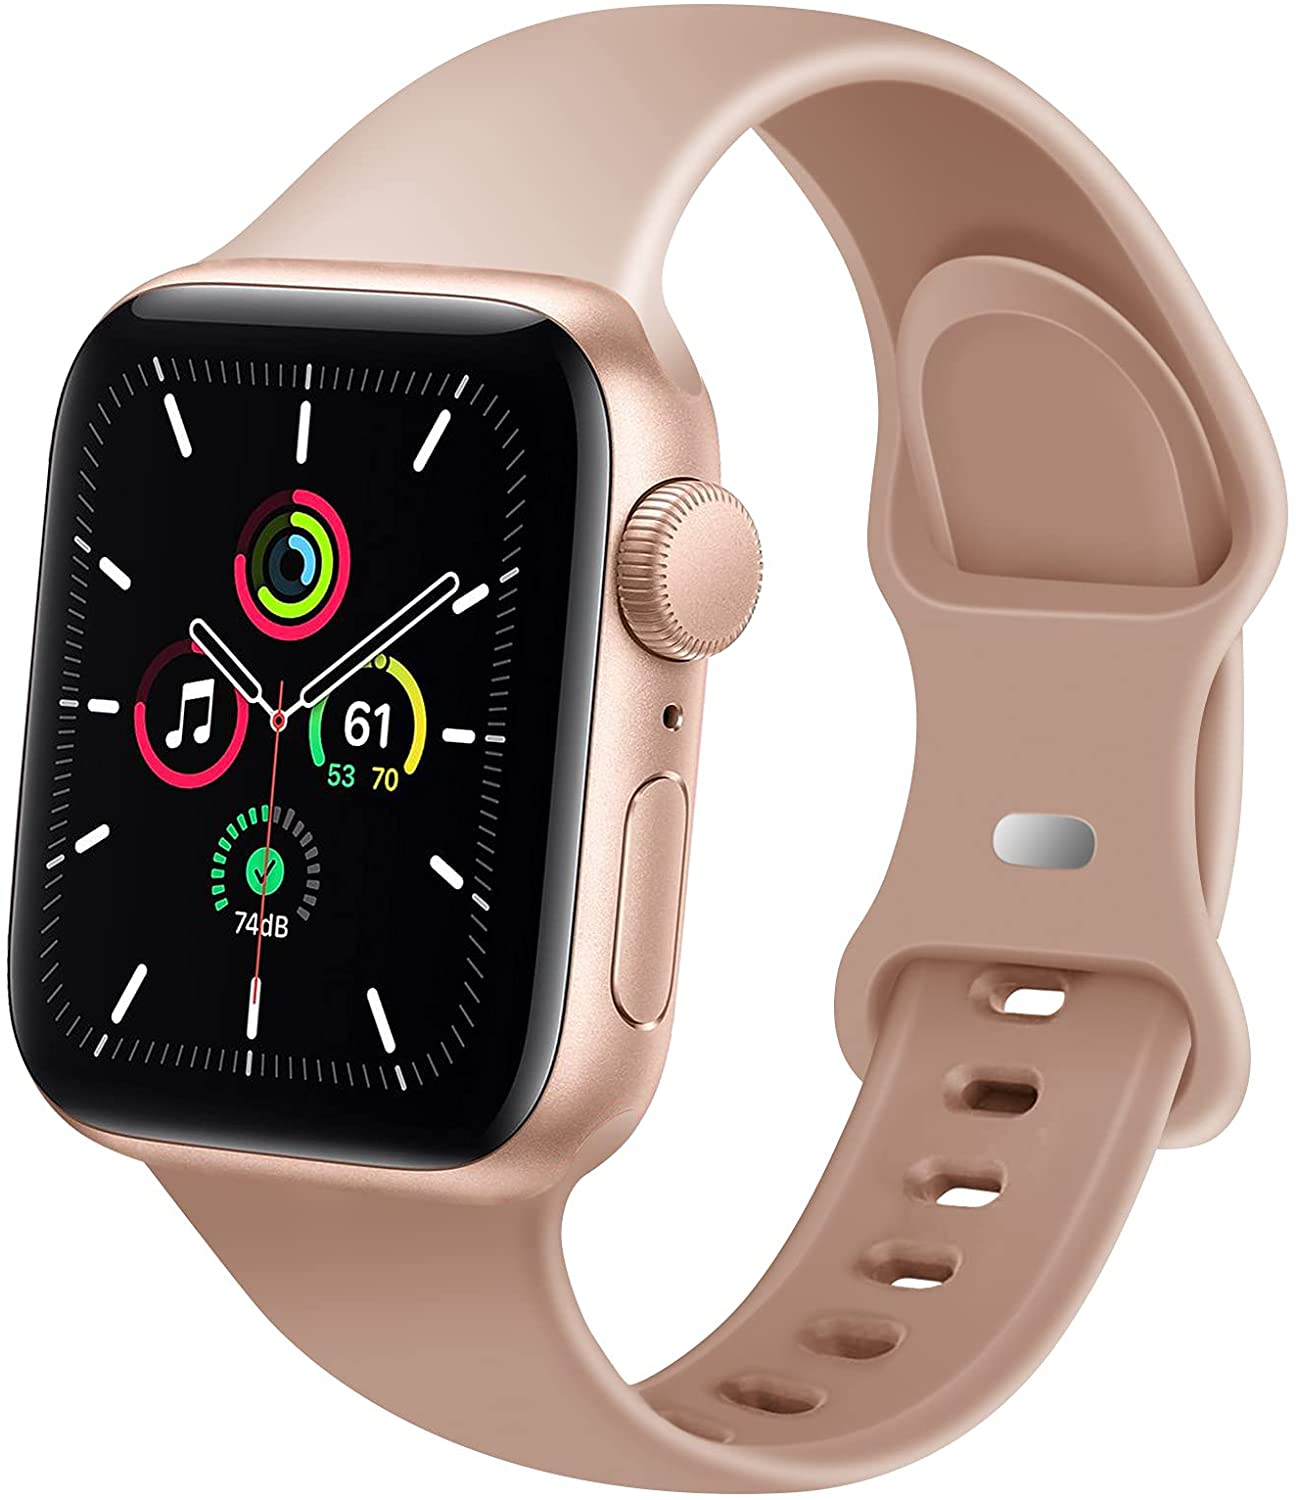 DYKEISS Silicone Sport Band Compatible for Apple Watch Band 38mm 42mm 40mm 44mm, Soft Replacement Strap Wristband Accessory for iWatch Series SE/6/5/4/3/2/1 Women Men